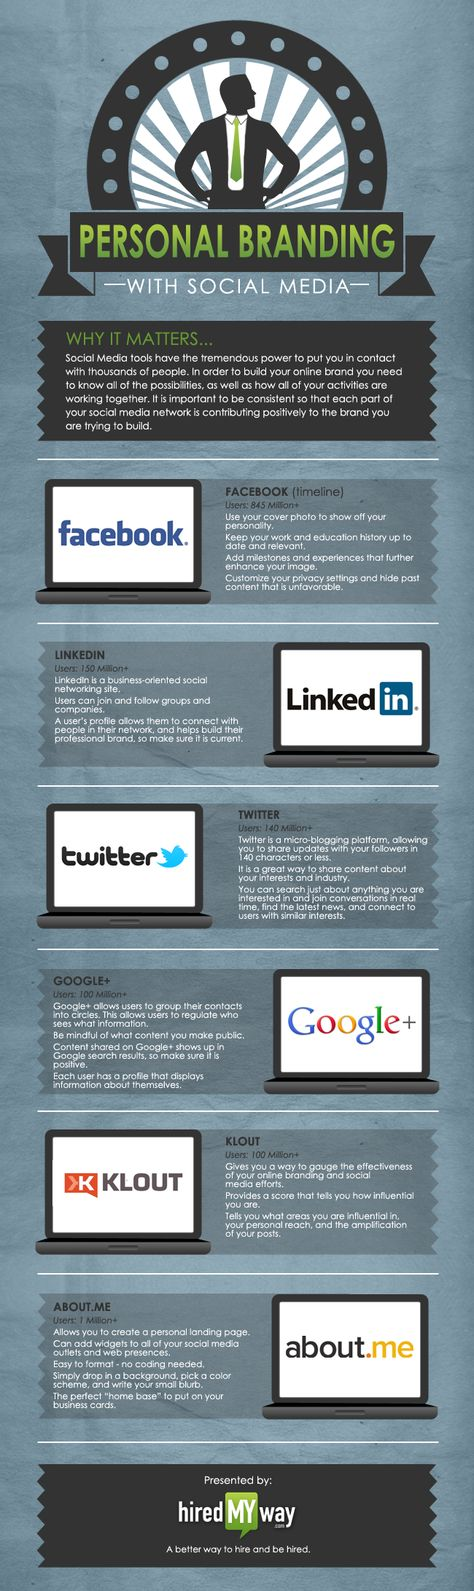 Personal Branding with #SocialMedia. #Infographic http://bit.ly/ijfLSO